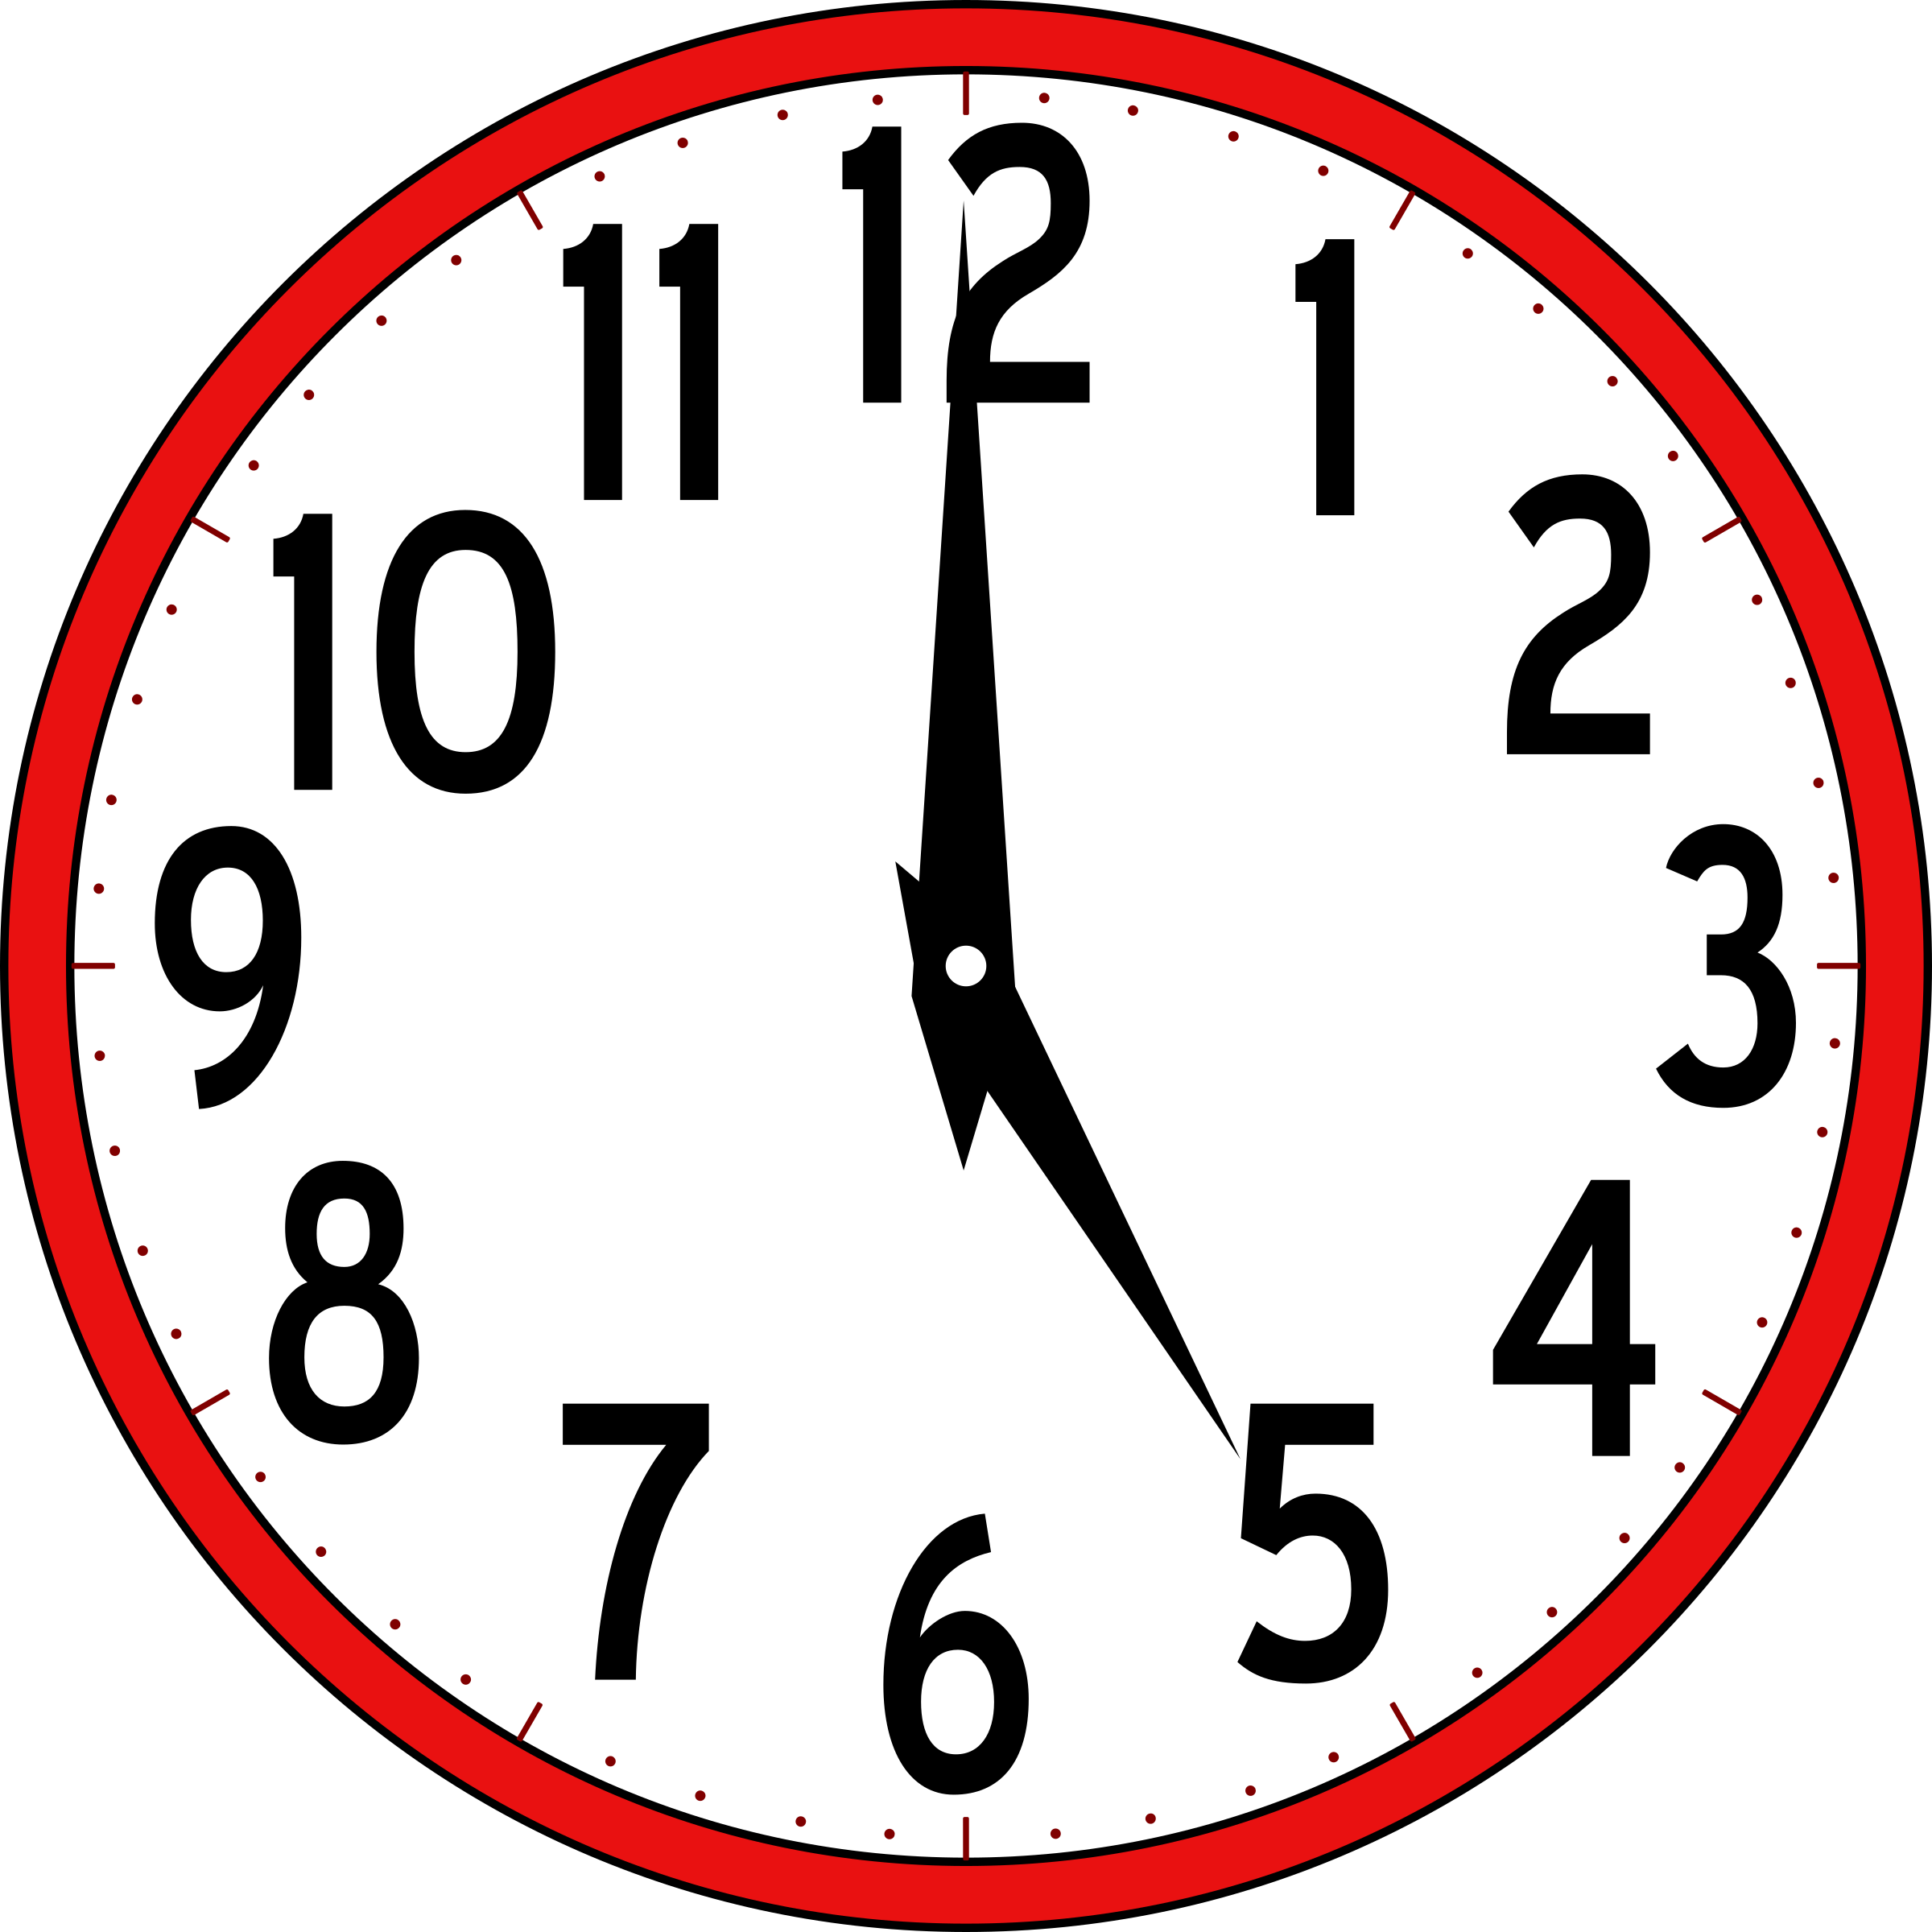 Clock Clip Art Free Wonderful Clock Clip Art For Teachers